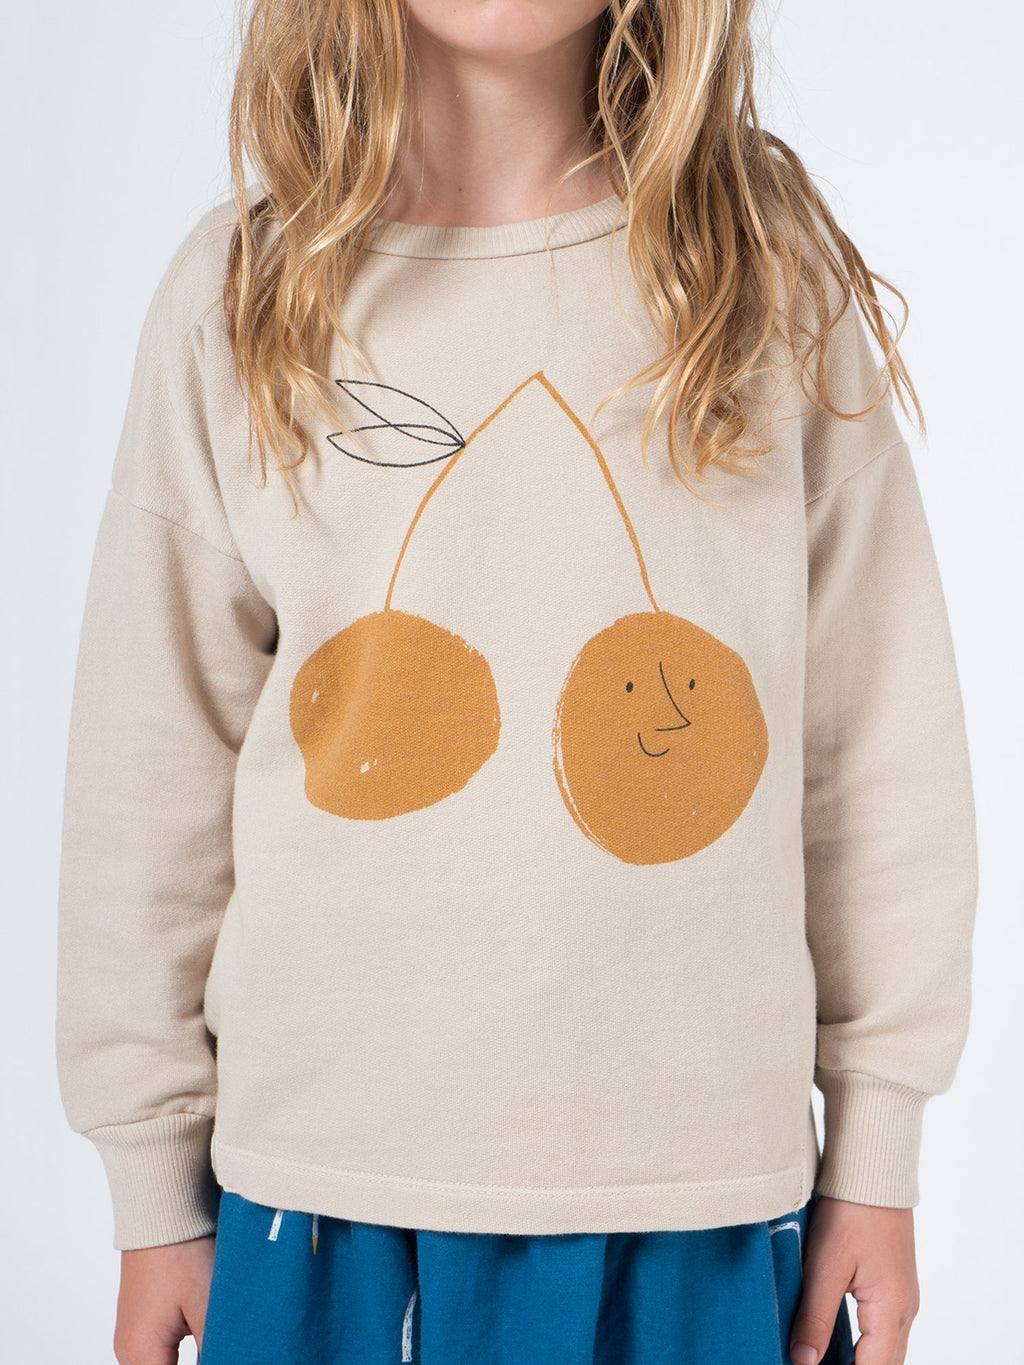 Cherry Sweatshirt Bobo Choses